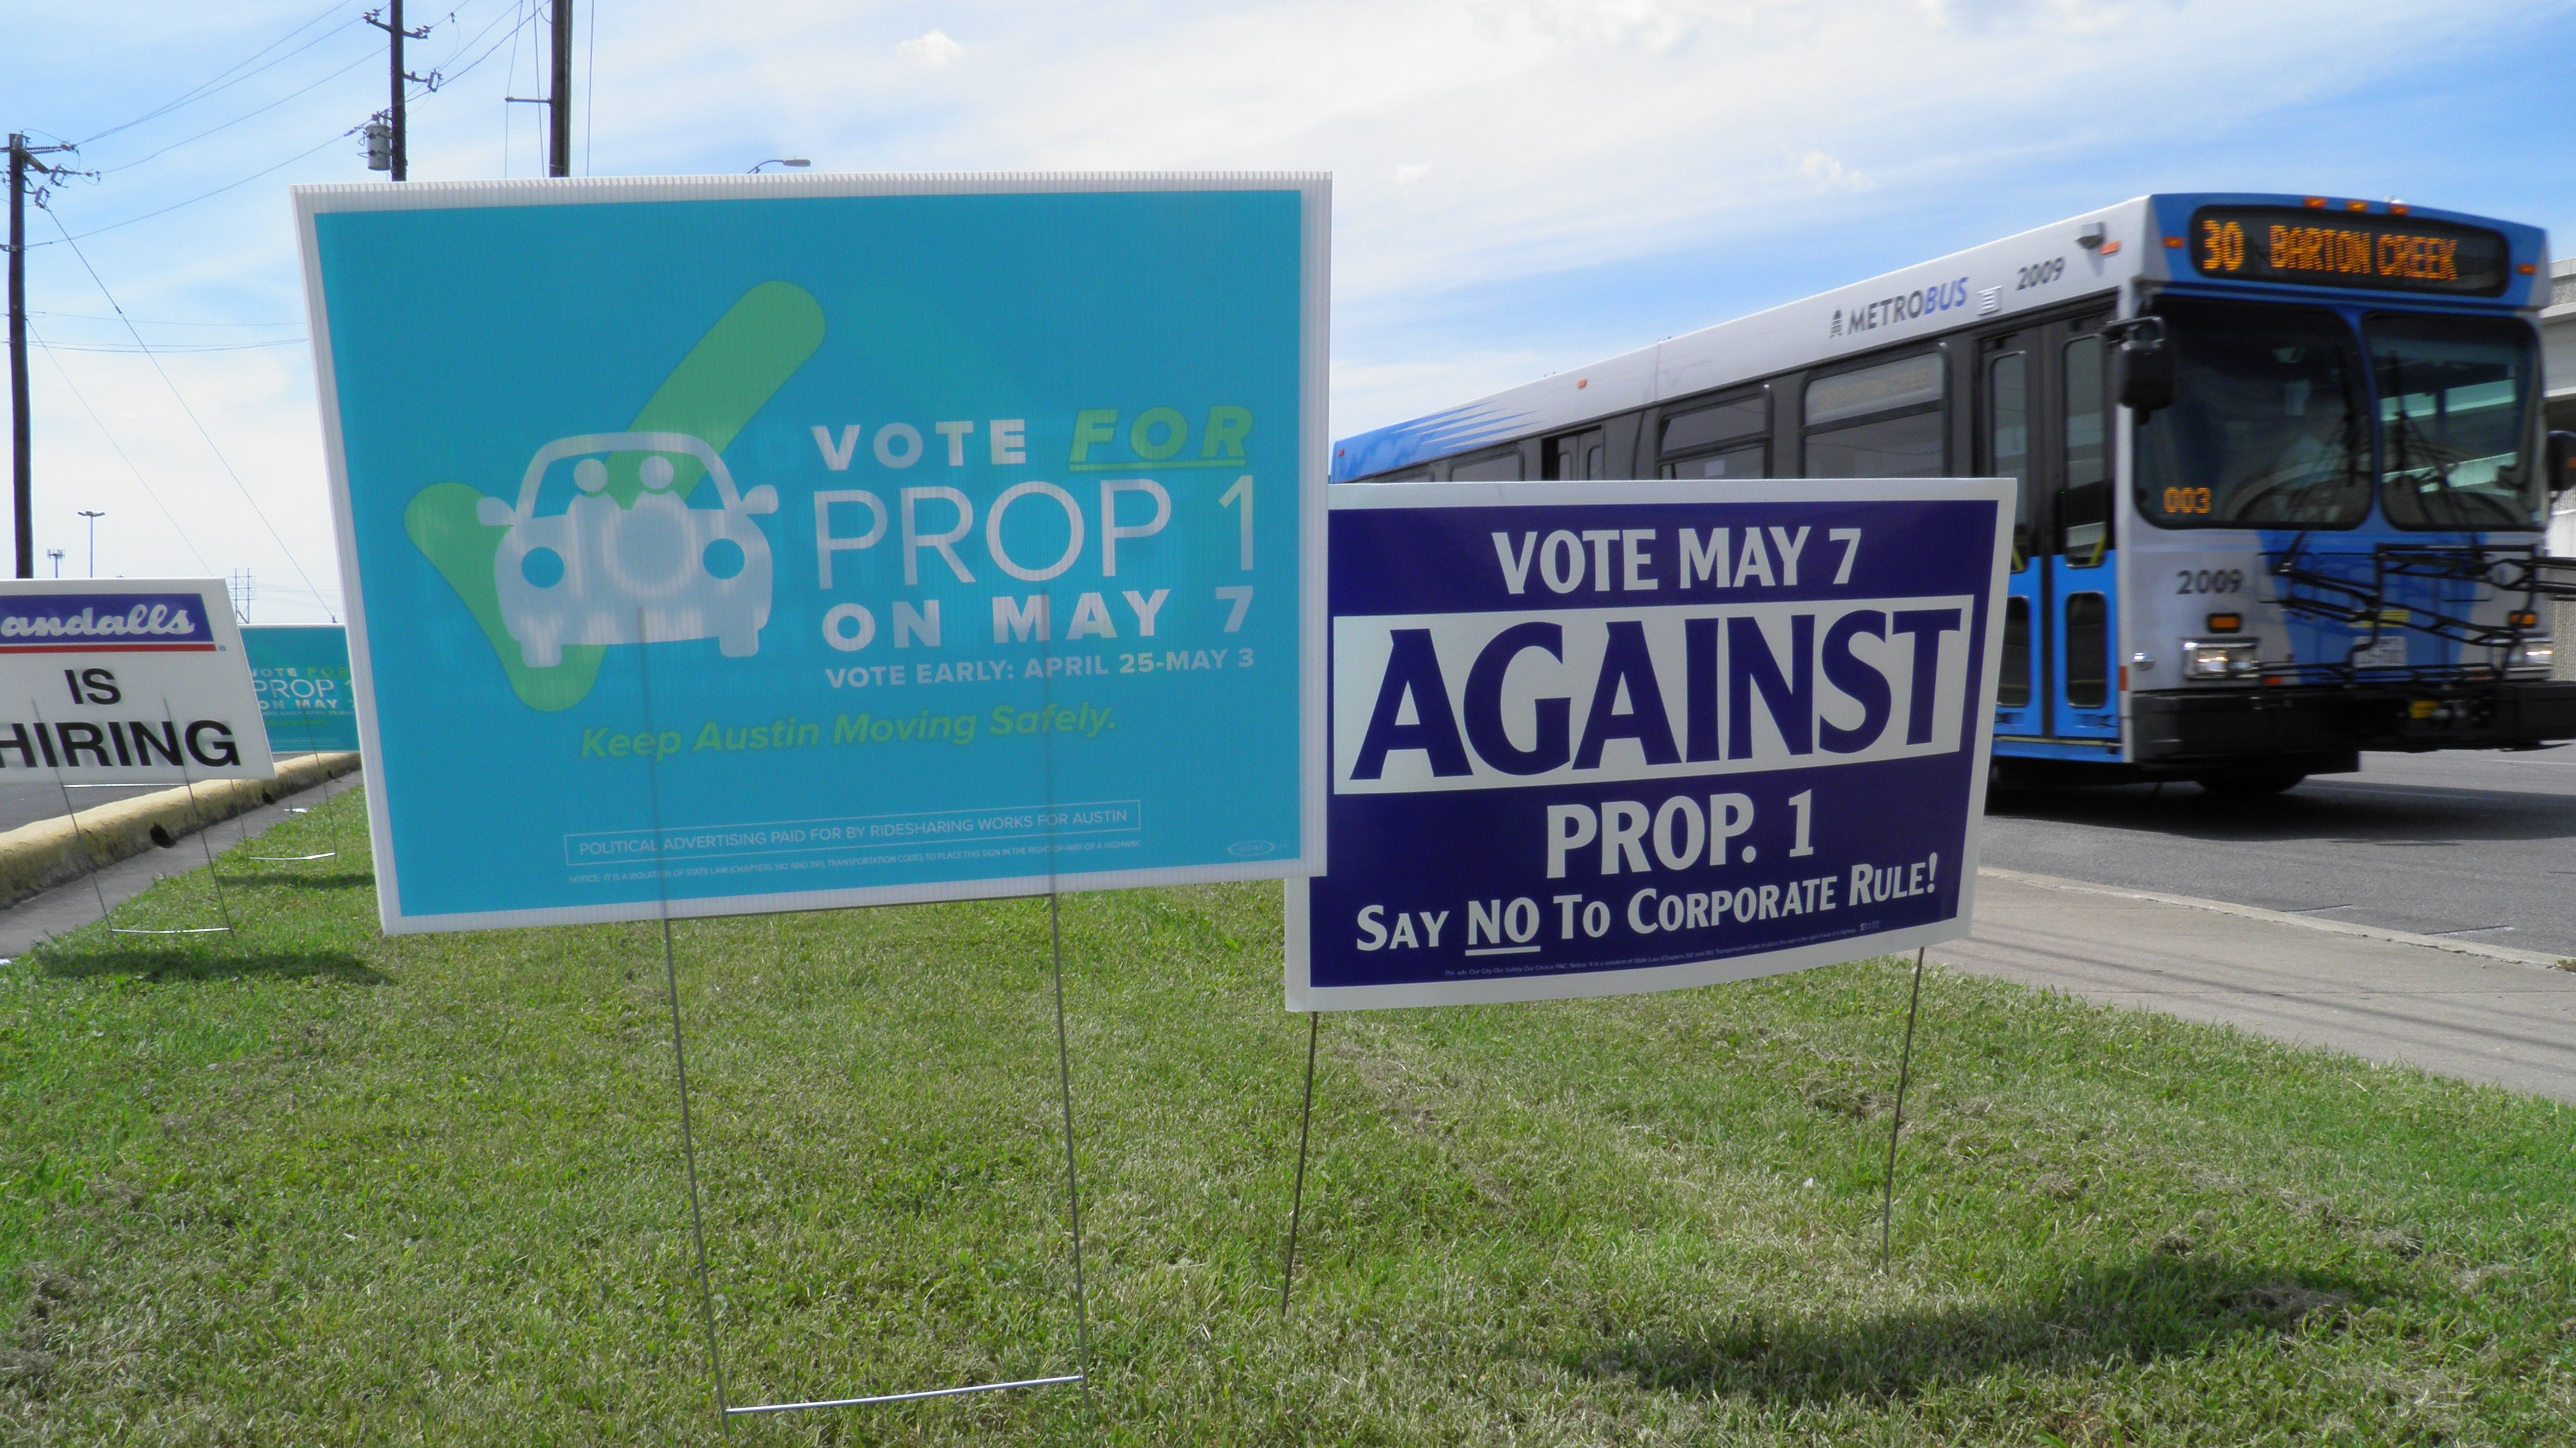 Campaign signs concerning a municipal vote over fingerprint requirements for ride-hailing companies such as Uber and Lyft are seen along a roadway in Austin, Texas, May 6, 2016. REUTERS/Jon Herskovitz - RTX2D5BA